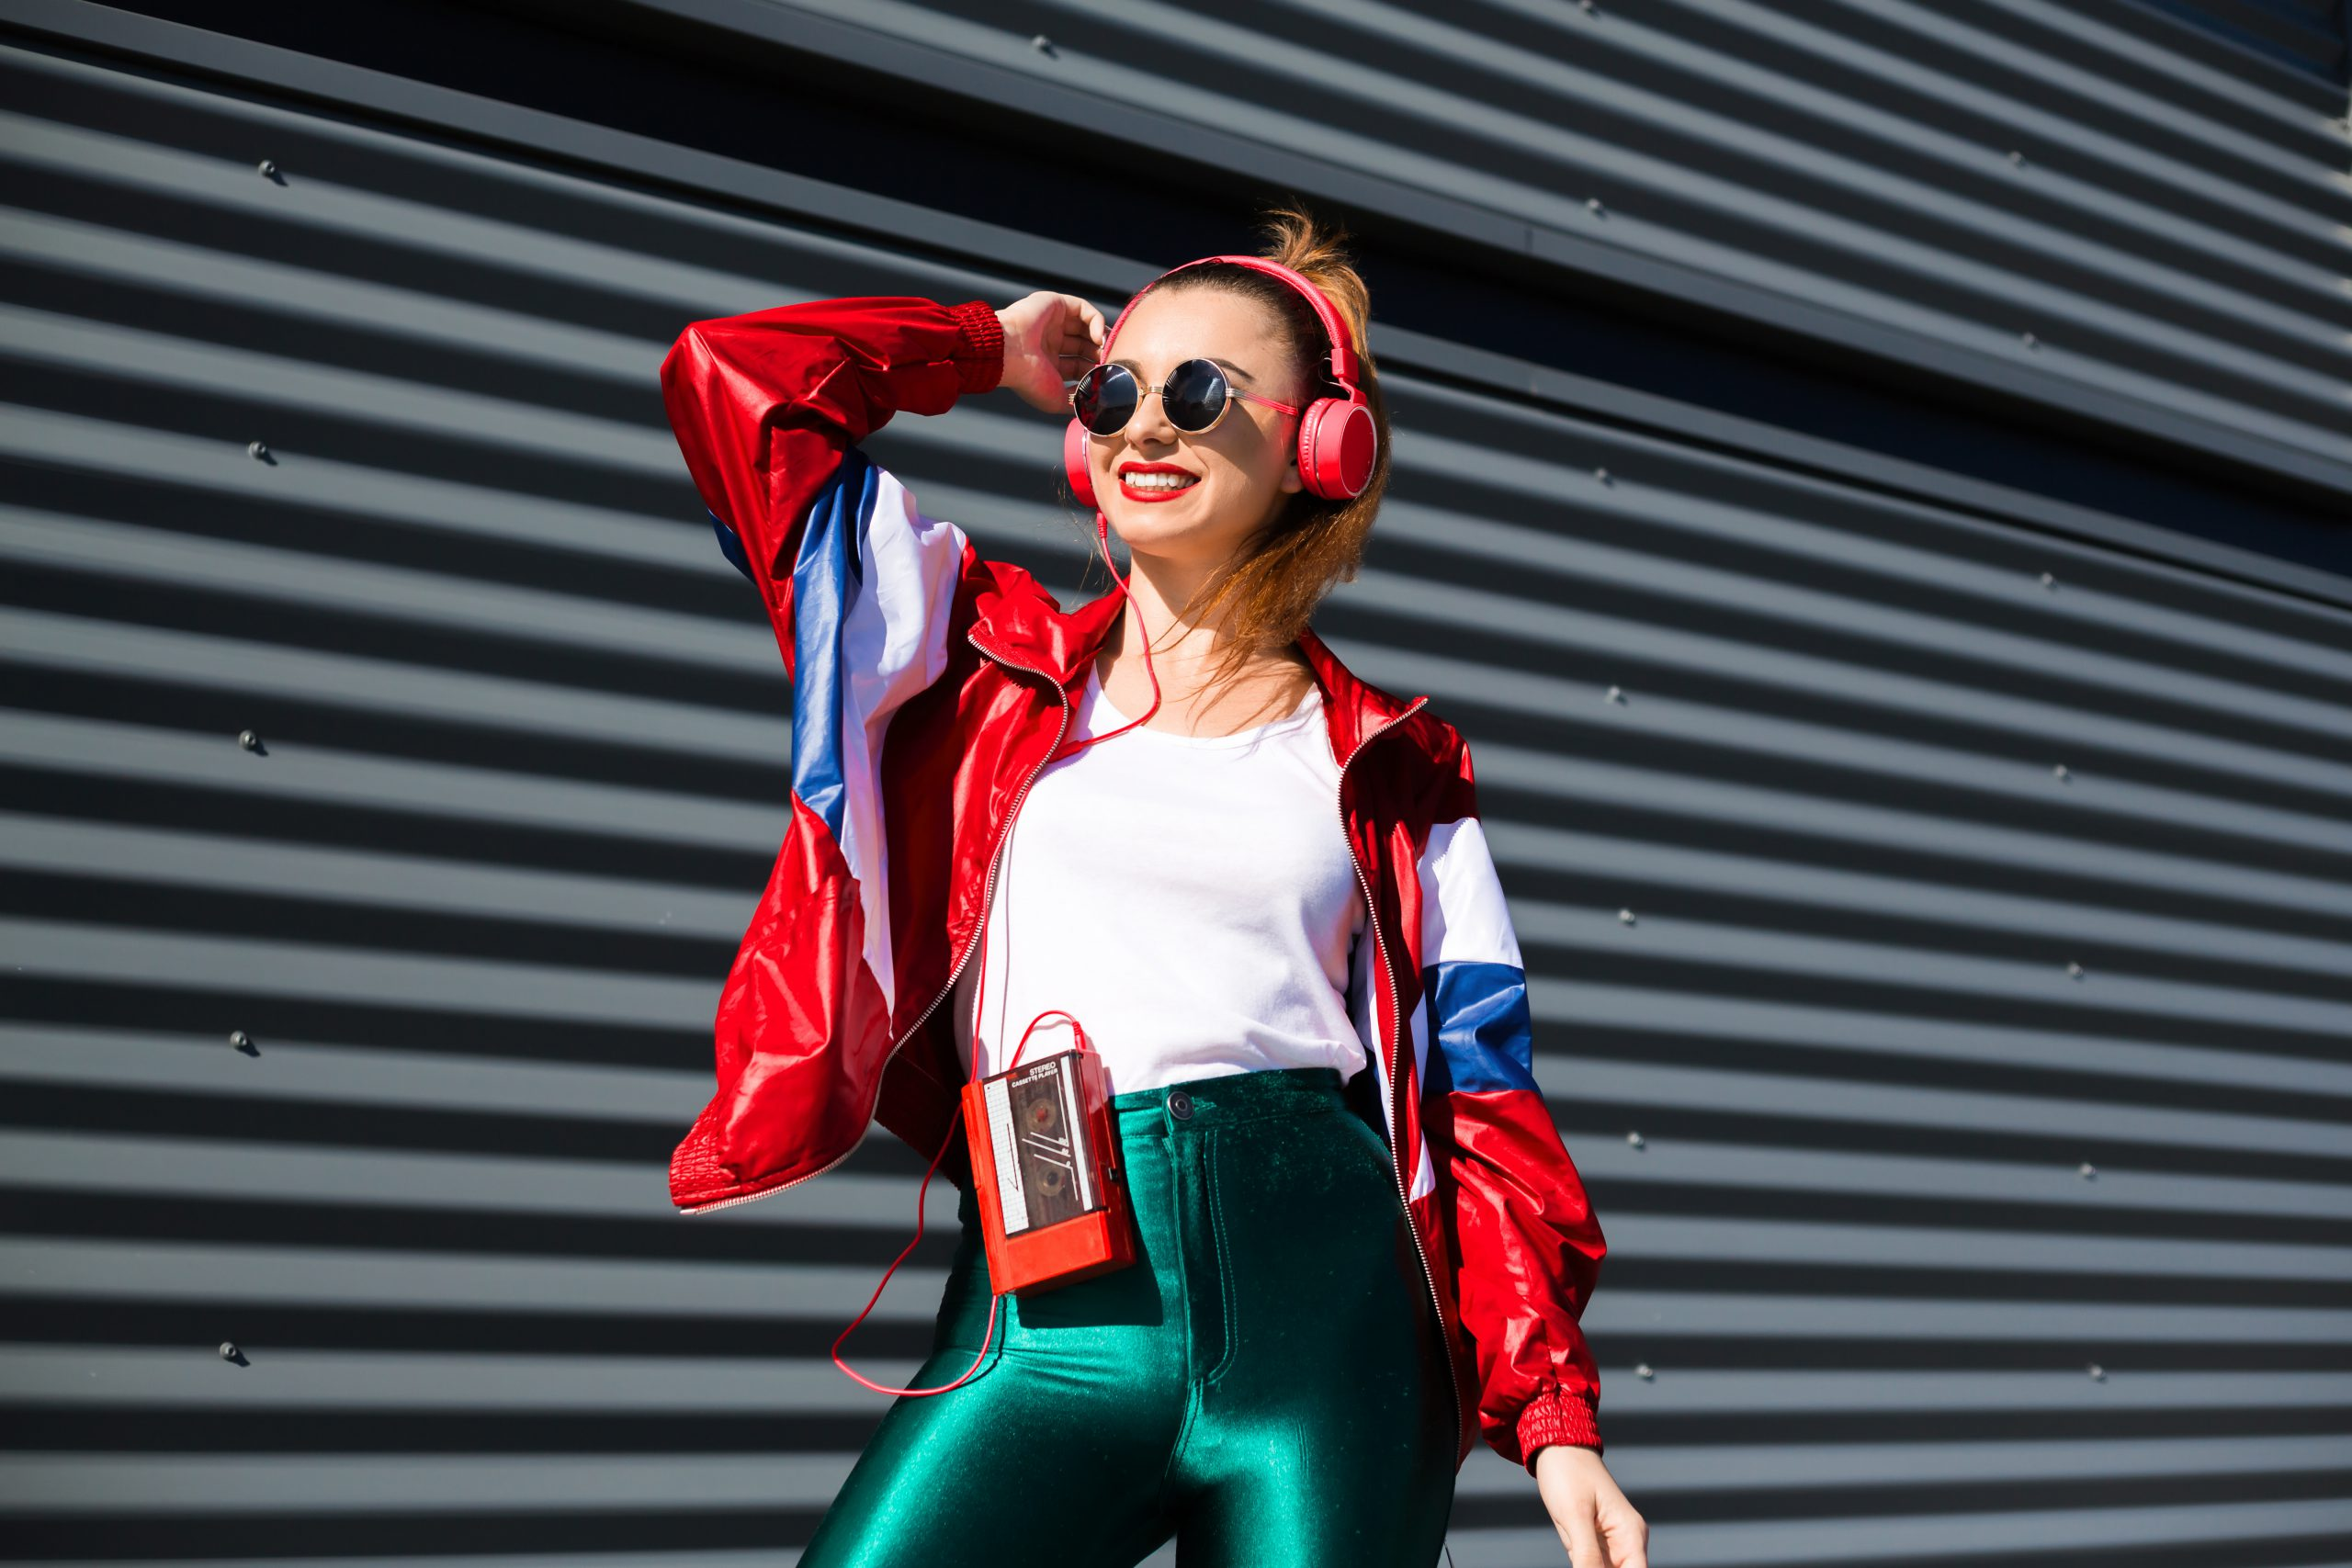 AW 18/19: The Trendiest Collection is HERE! #disco #newlaunch